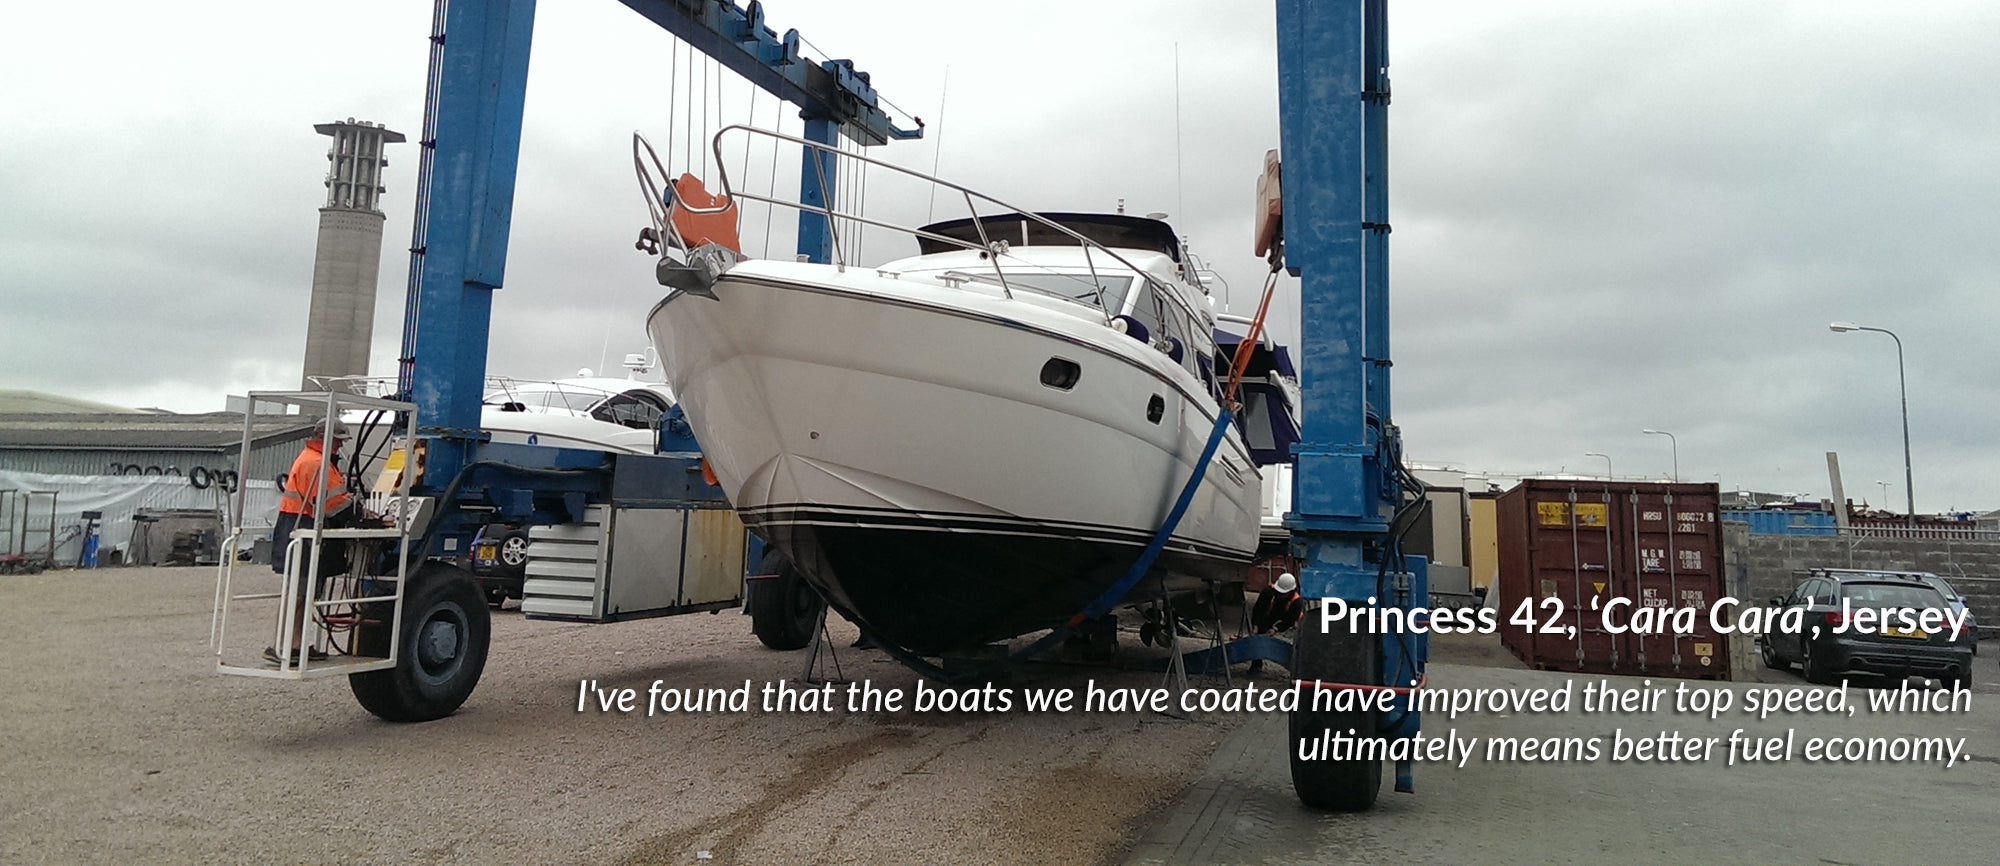 Case Studies Princess Motorboat Antifoul Foul Release